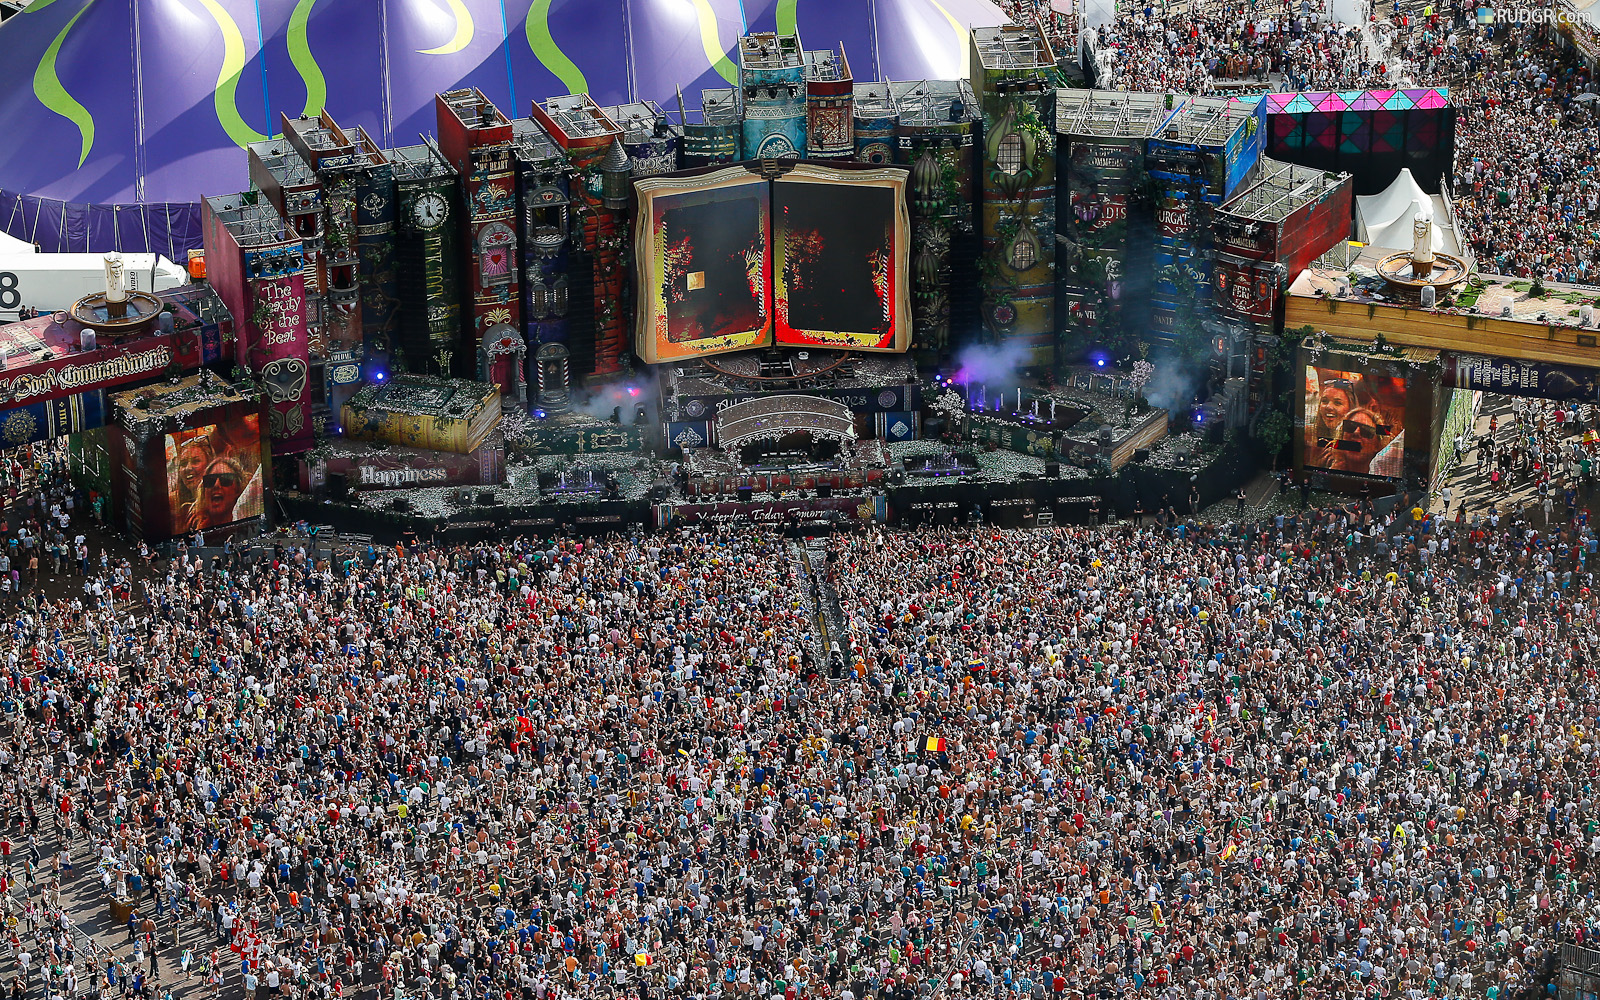 http://2.bp.blogspot.com/-XiT962JVUy8/UIpqYfFRerI/AAAAAAAAAGA/OX4GfB-6QQk/s1600/tomorrowland-2012-hd-wallpaper-carpet-of-people.jpg